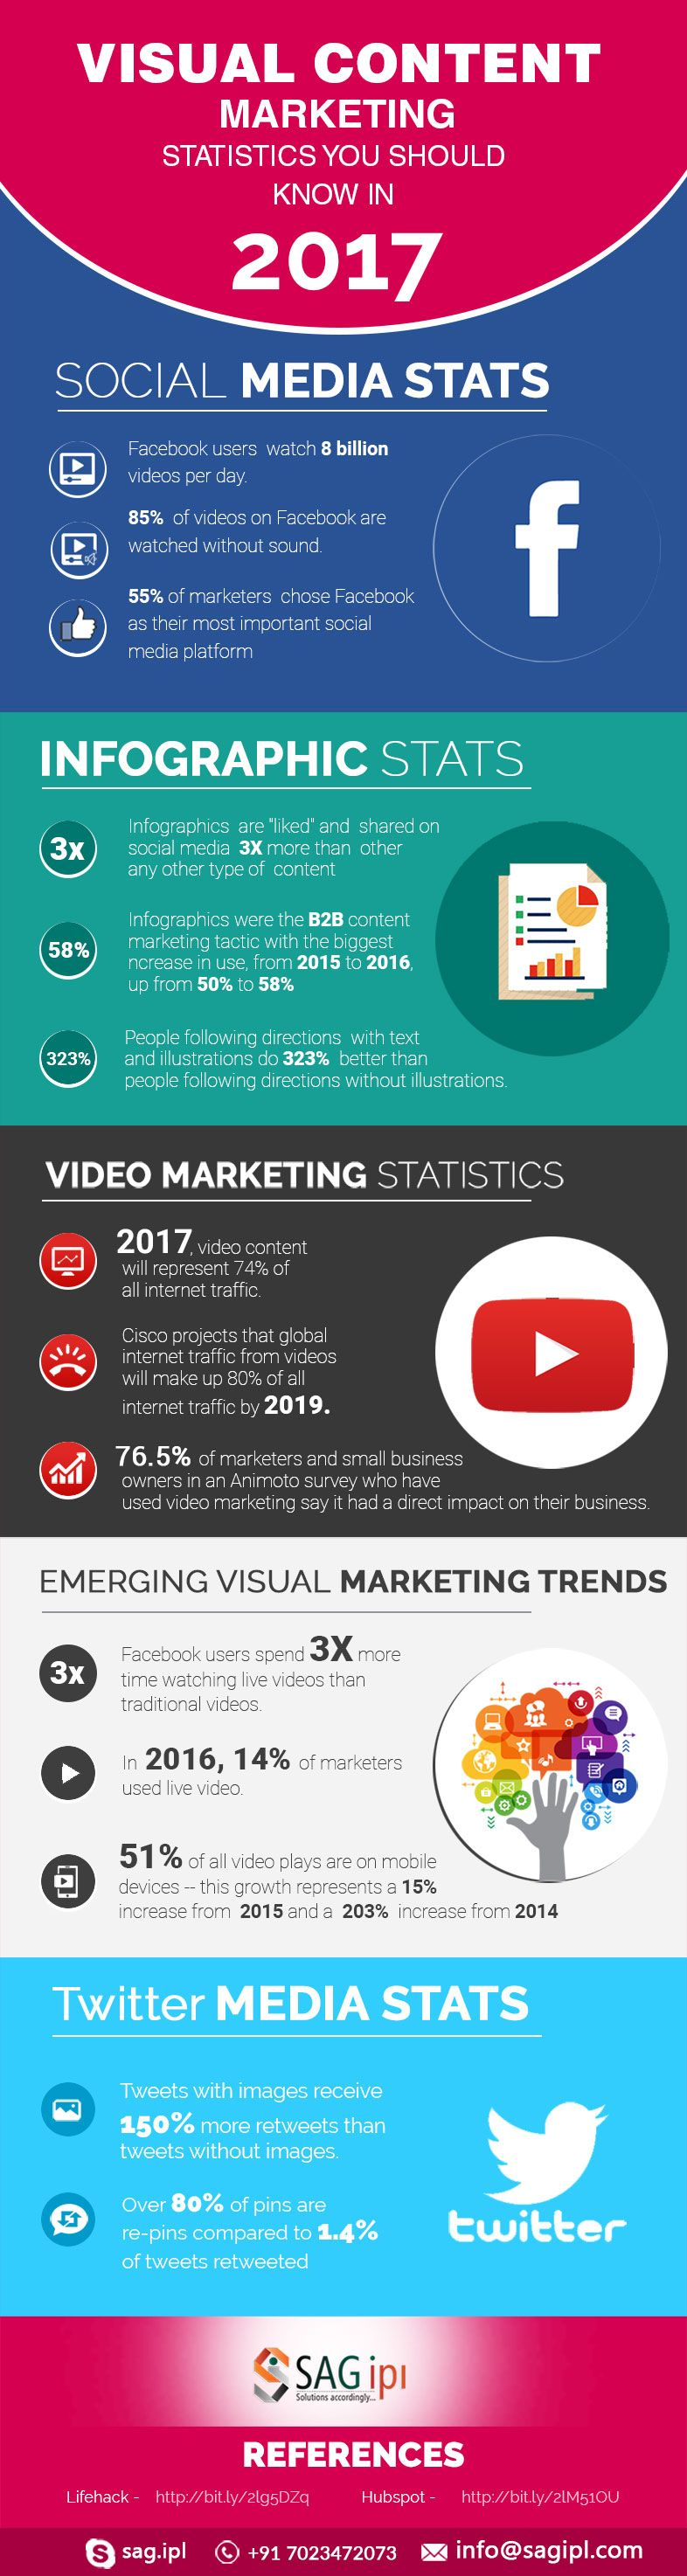 Visual Content Marketing Statistics You Should Know In 2017 #Infographic